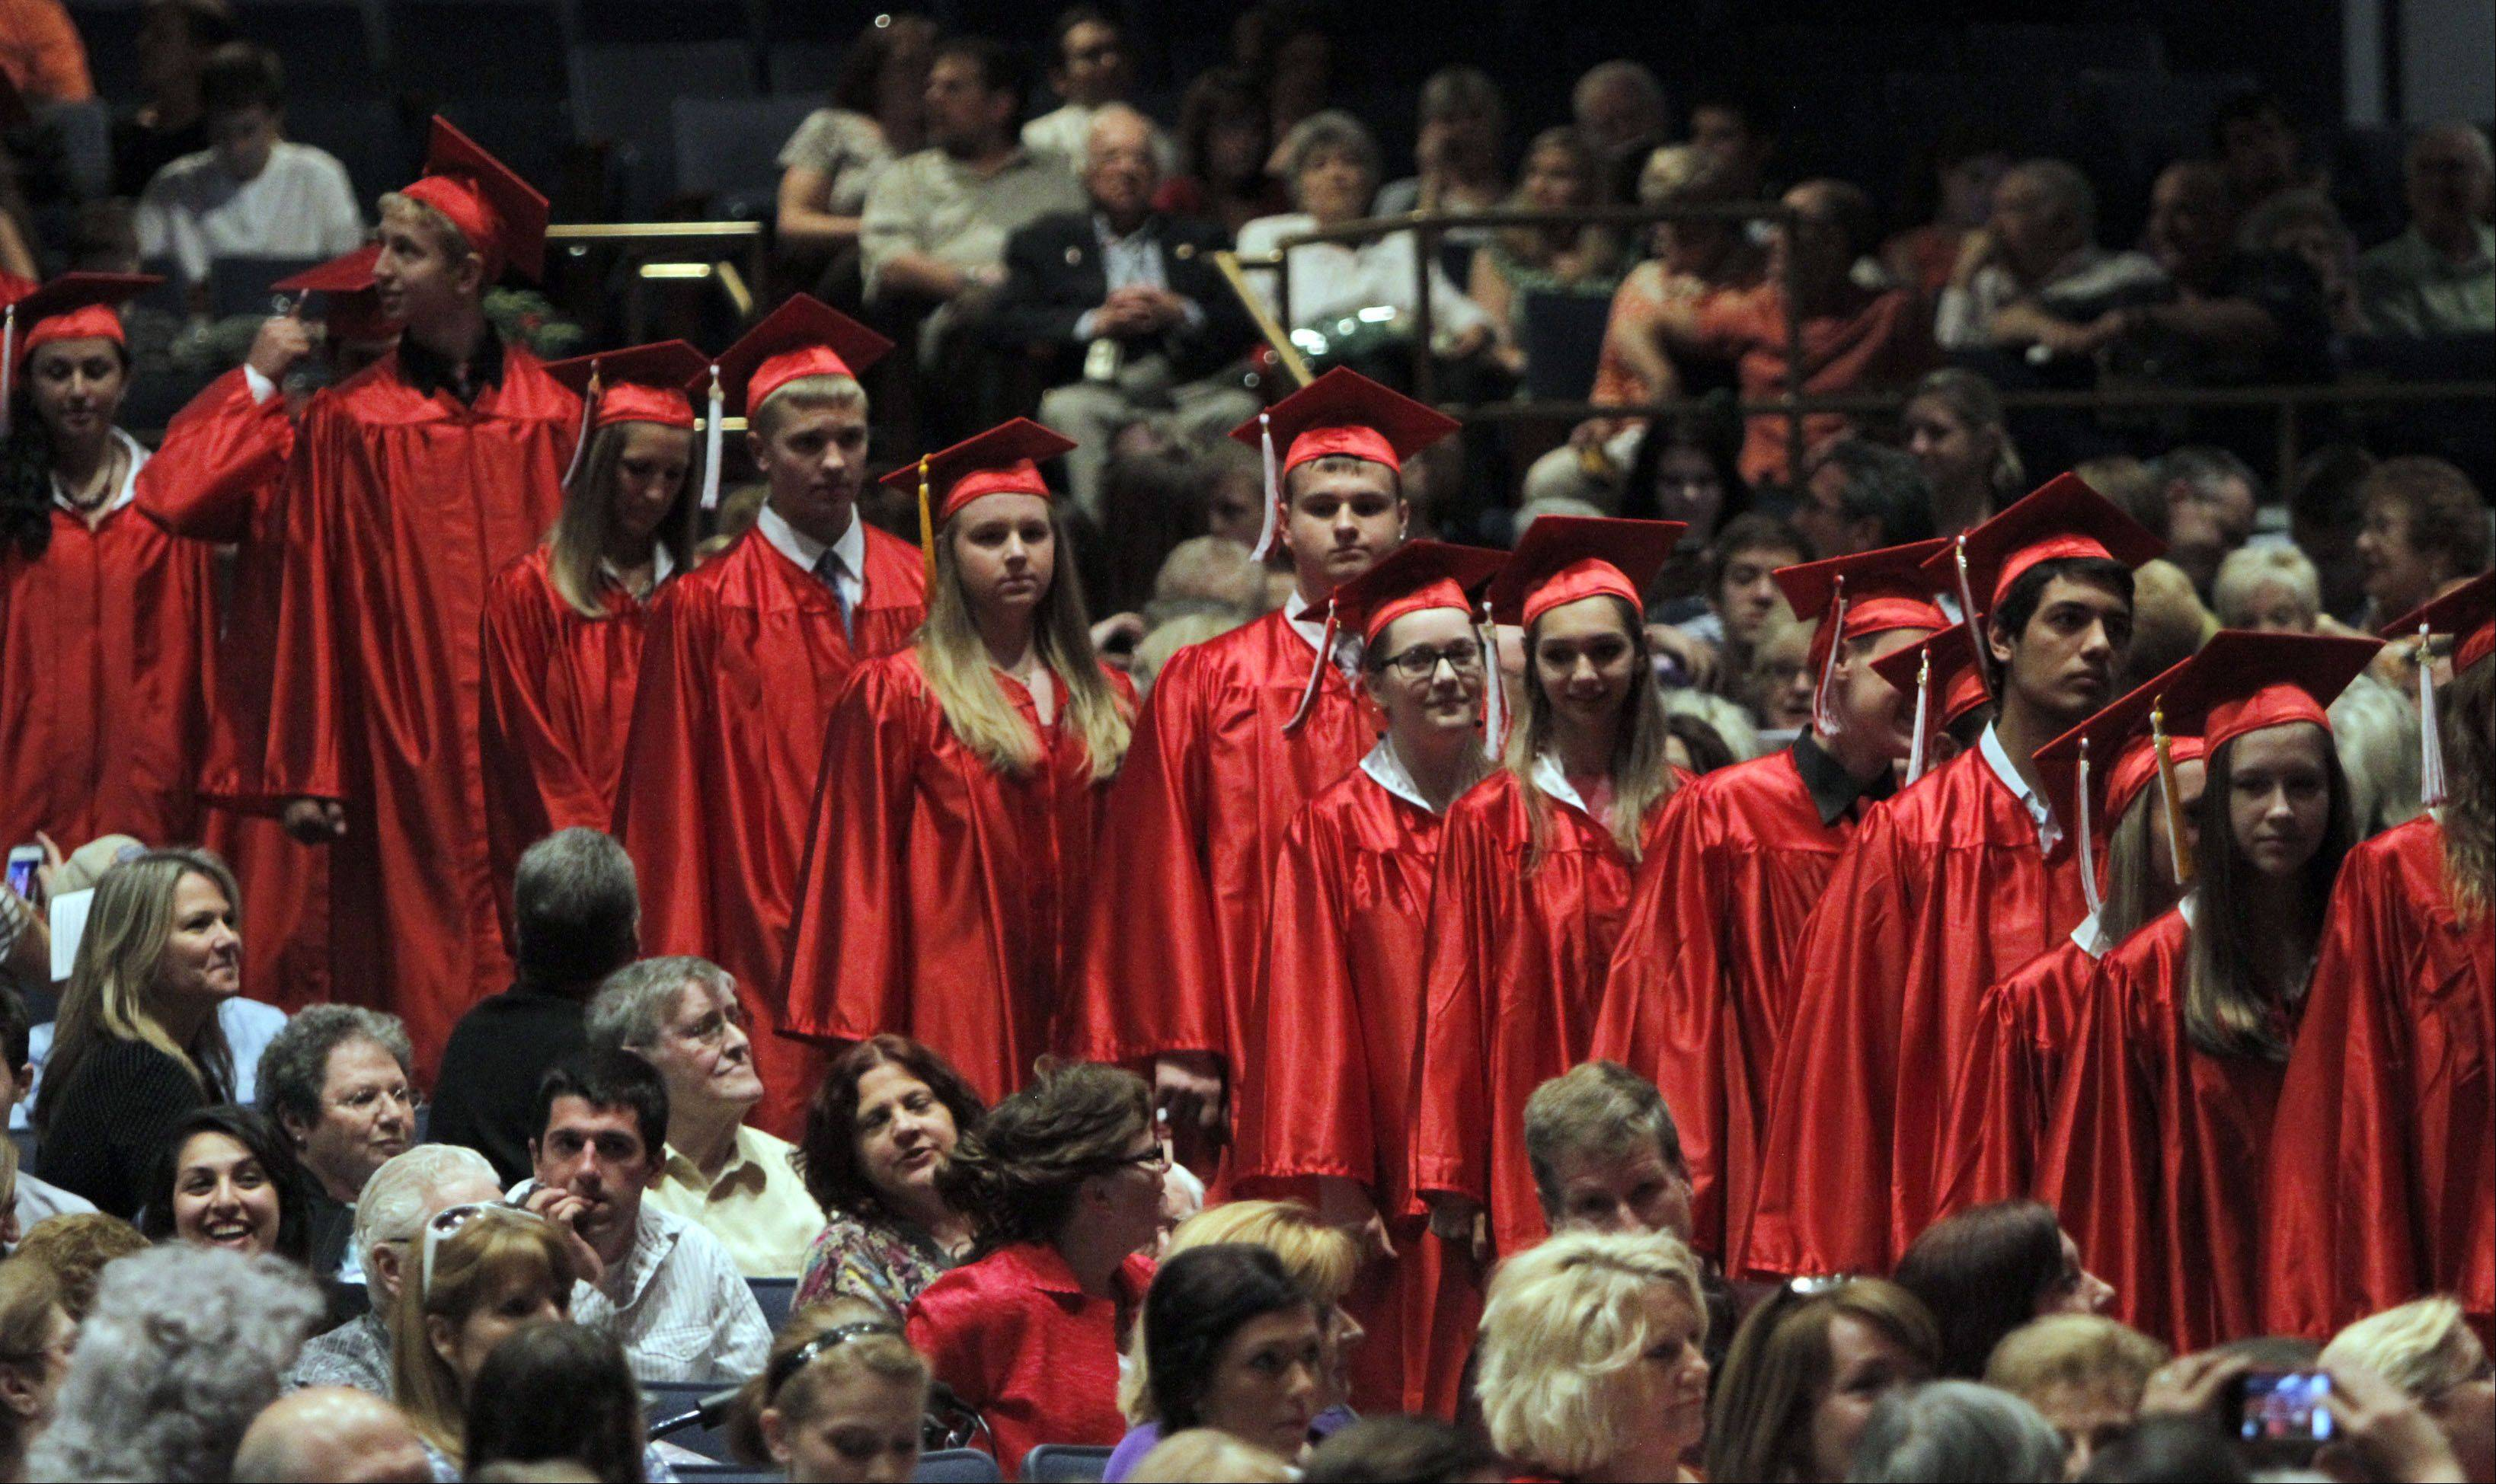 Maine South High School seniors head to the stage during their graduation ceremony at Rosemont Theatre on Sunday.